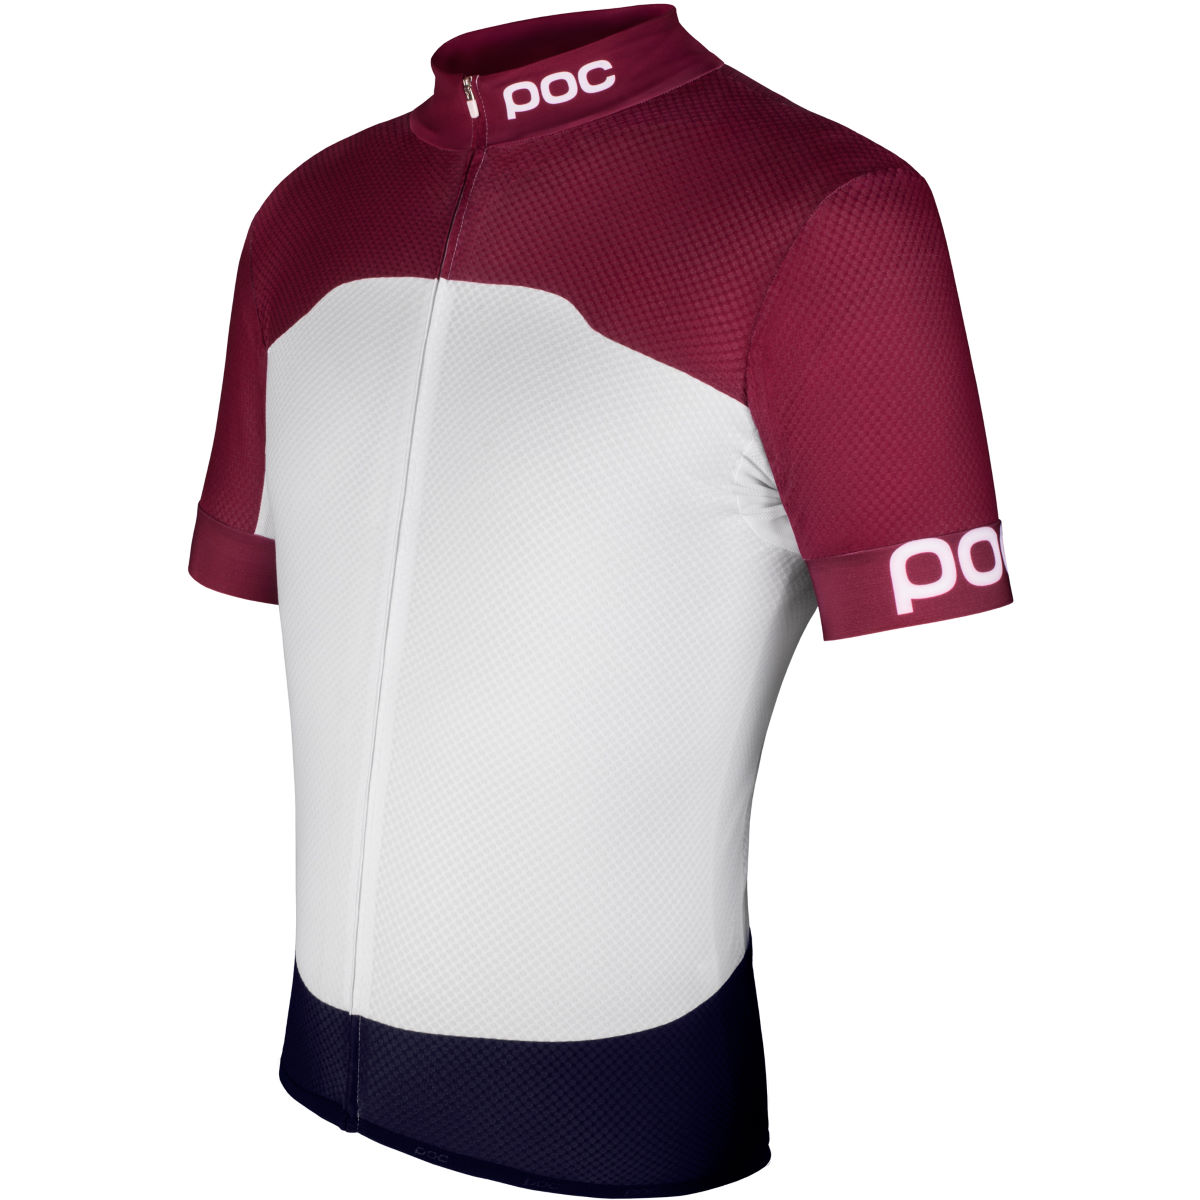 Maillot POC Raceday Climber (PE15) - Extra Extra Large Granate Red/White Maillots vélo à manches courtes